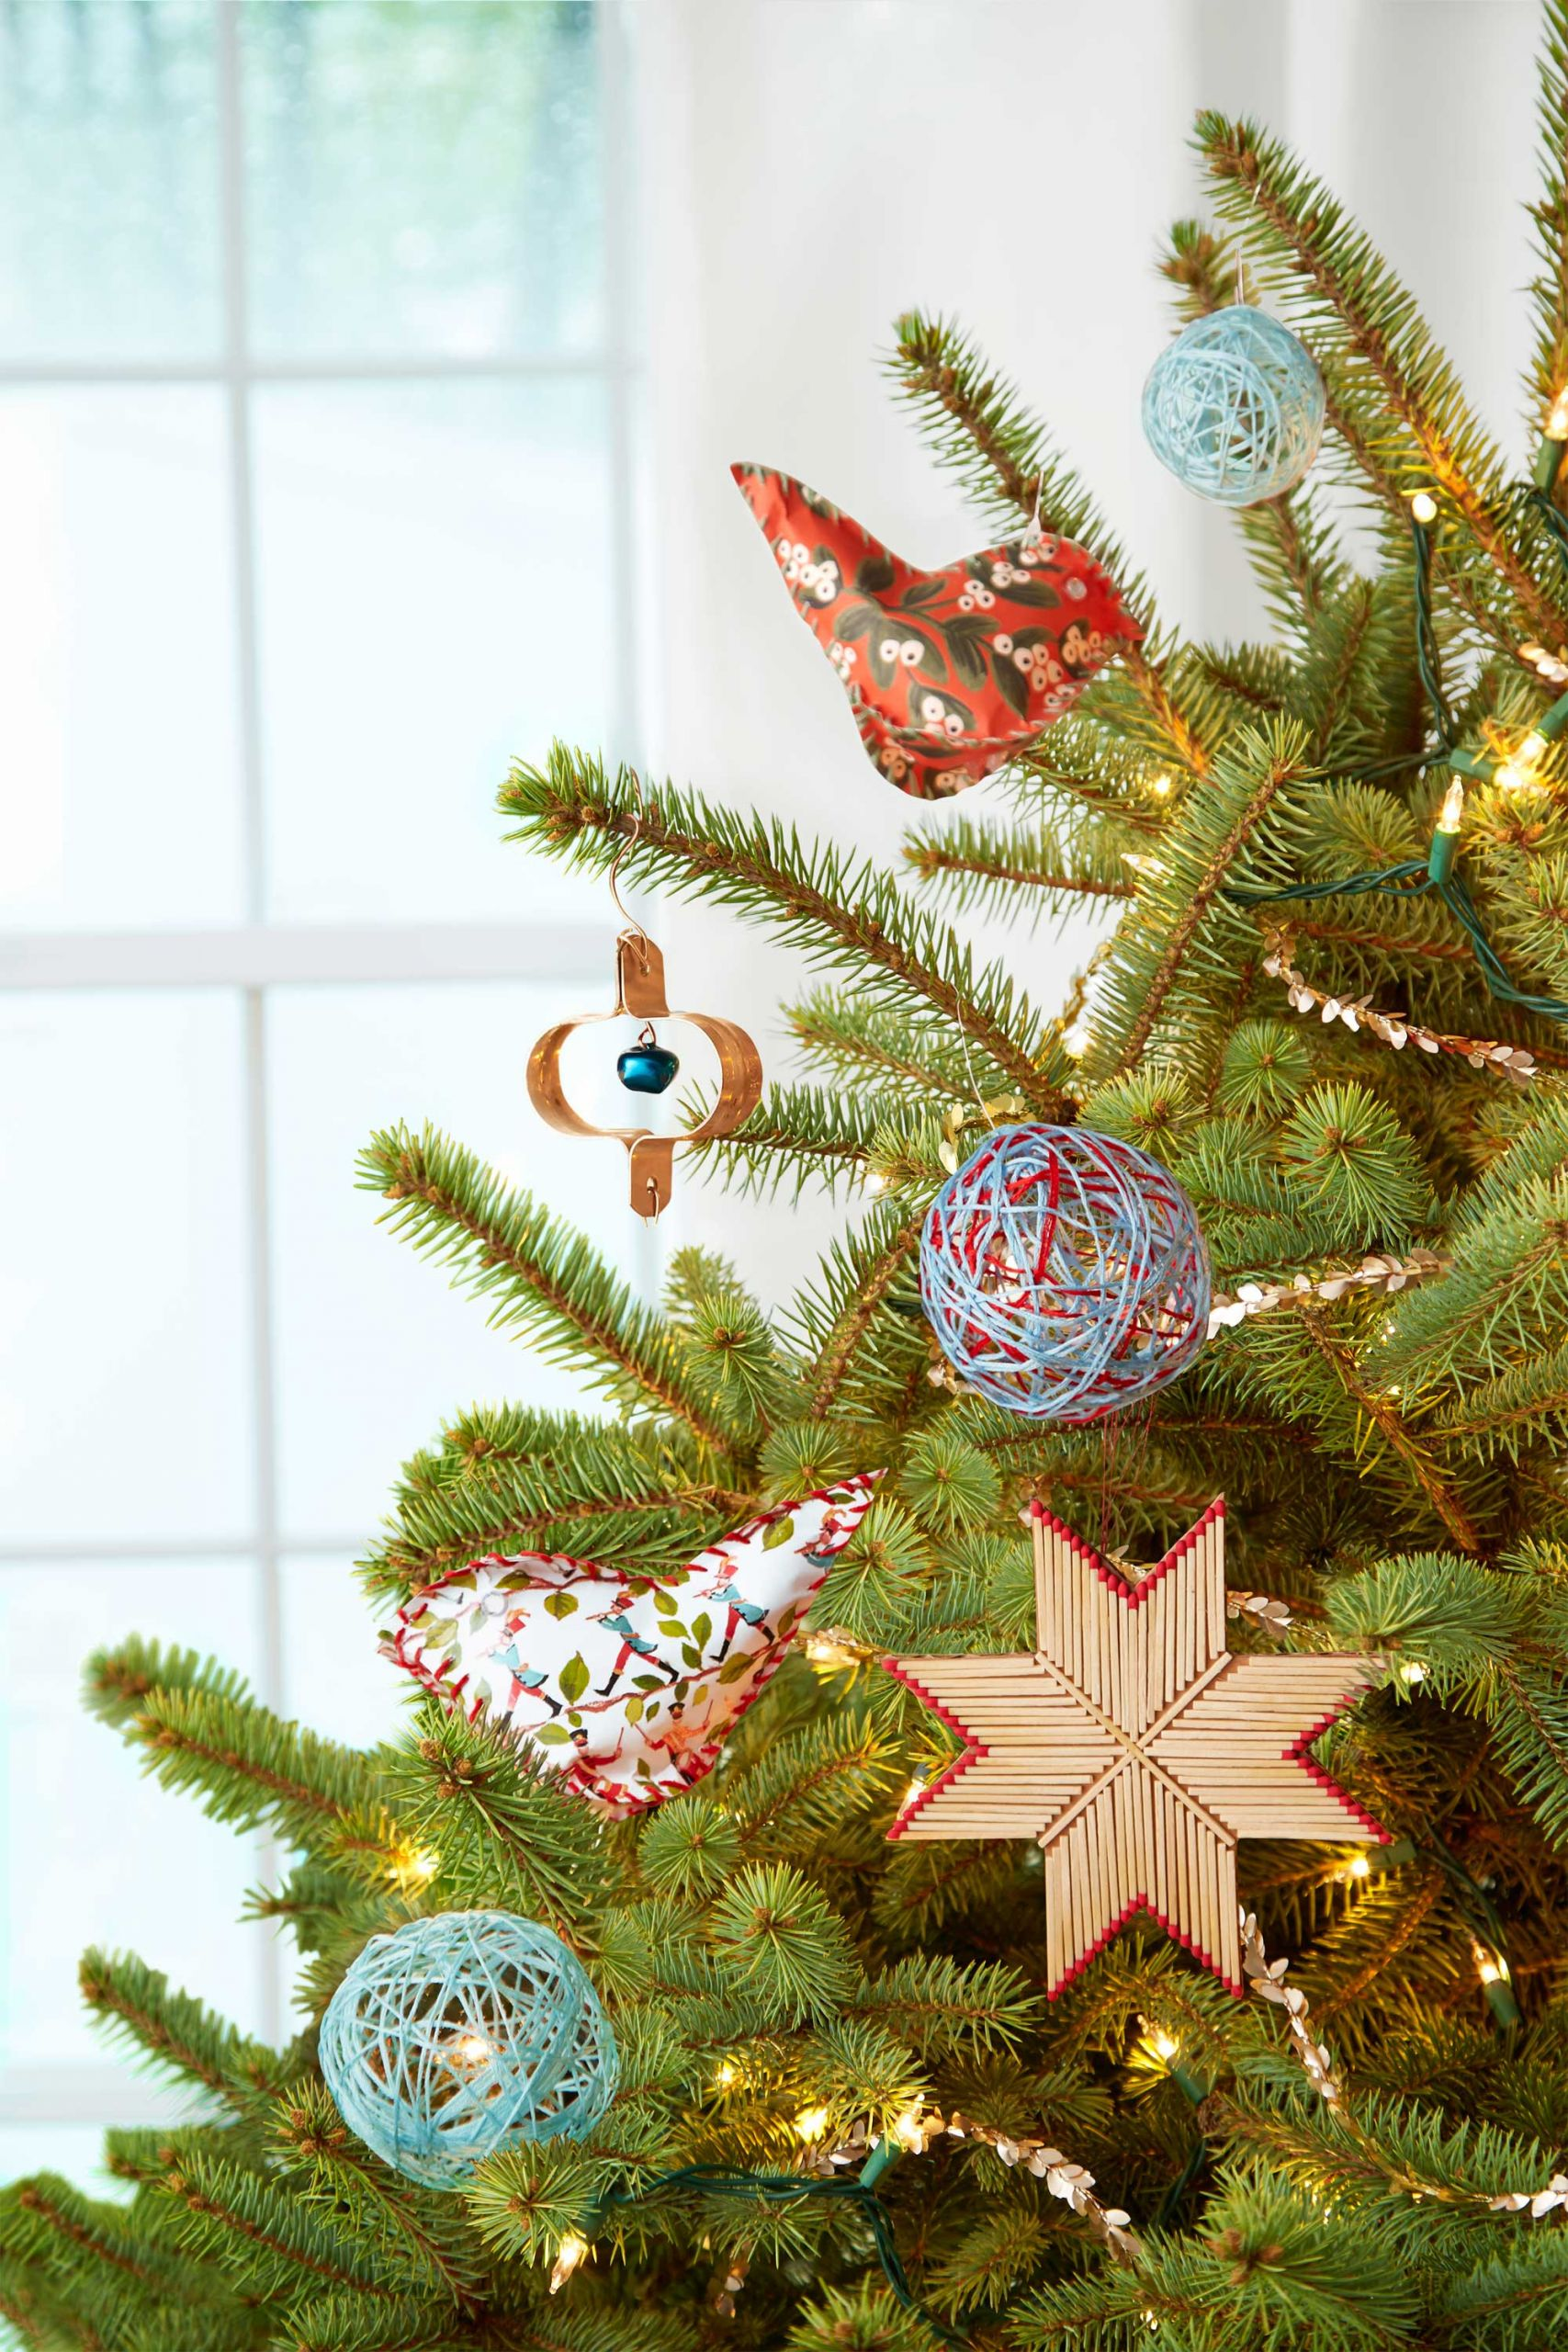 DIY Christmas Ornaments With Pictures  25 Homemade DIY Christmas Ornament Craft Ideas How To